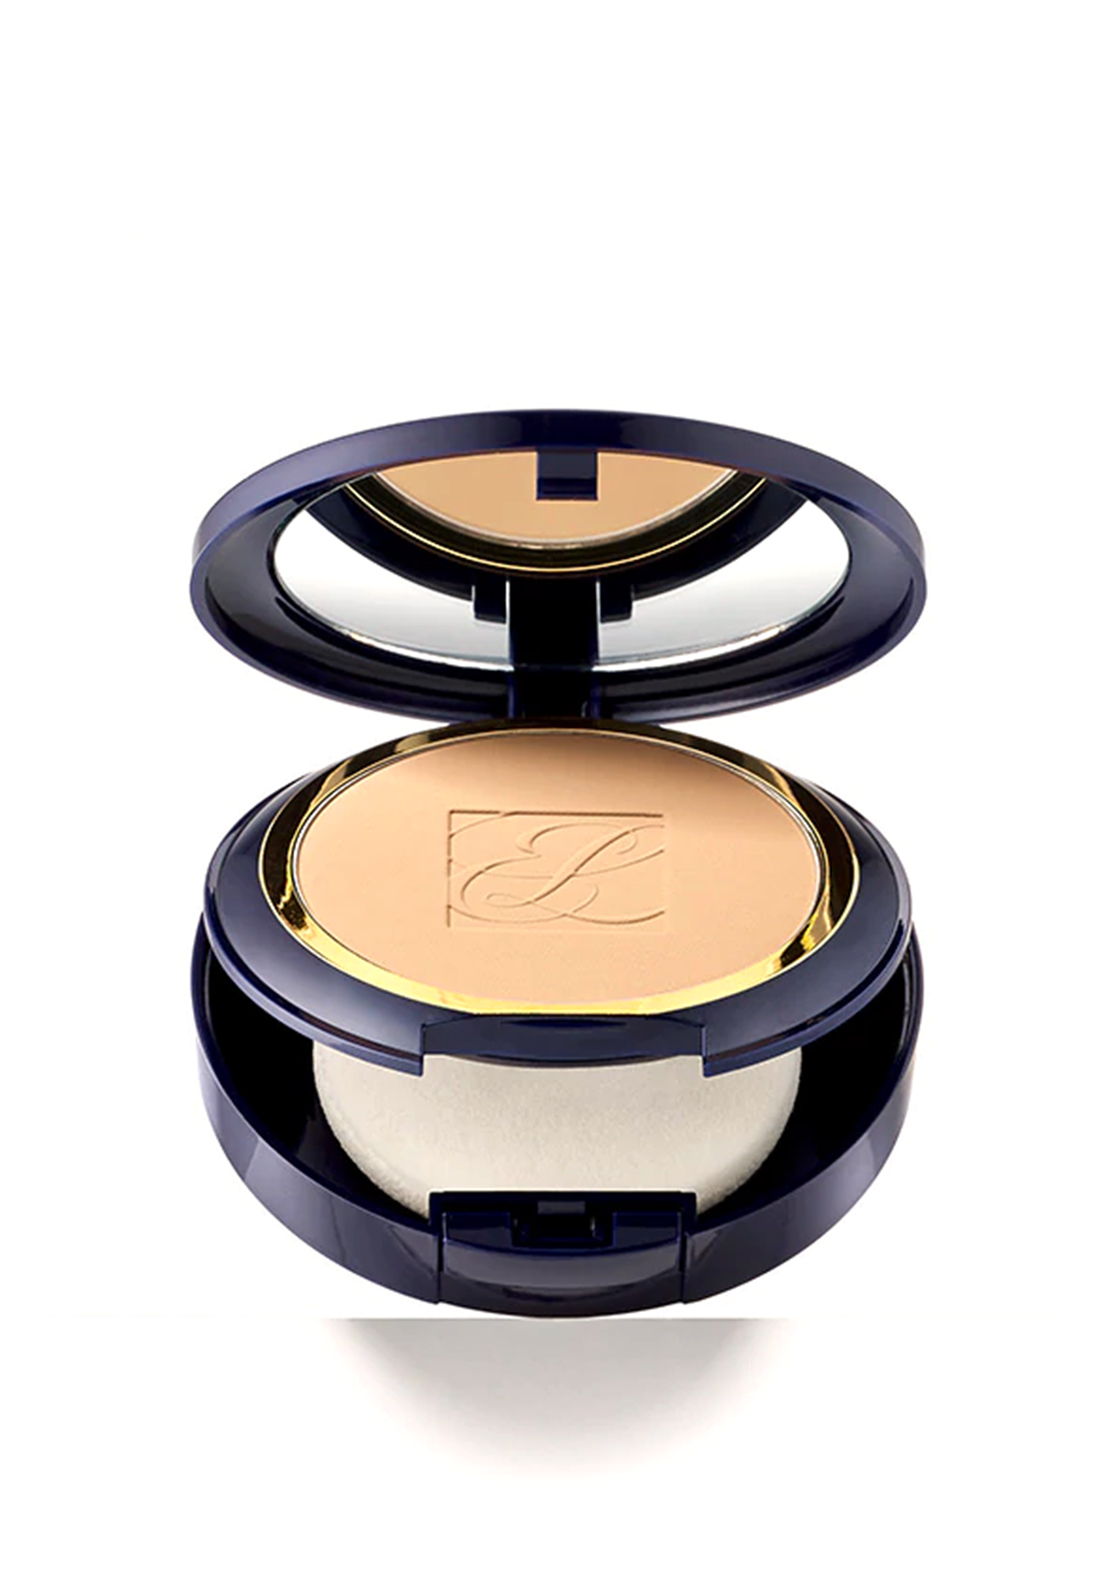 Estee Lauder Double Wear Stay In Place Powder Makeup, Wheat